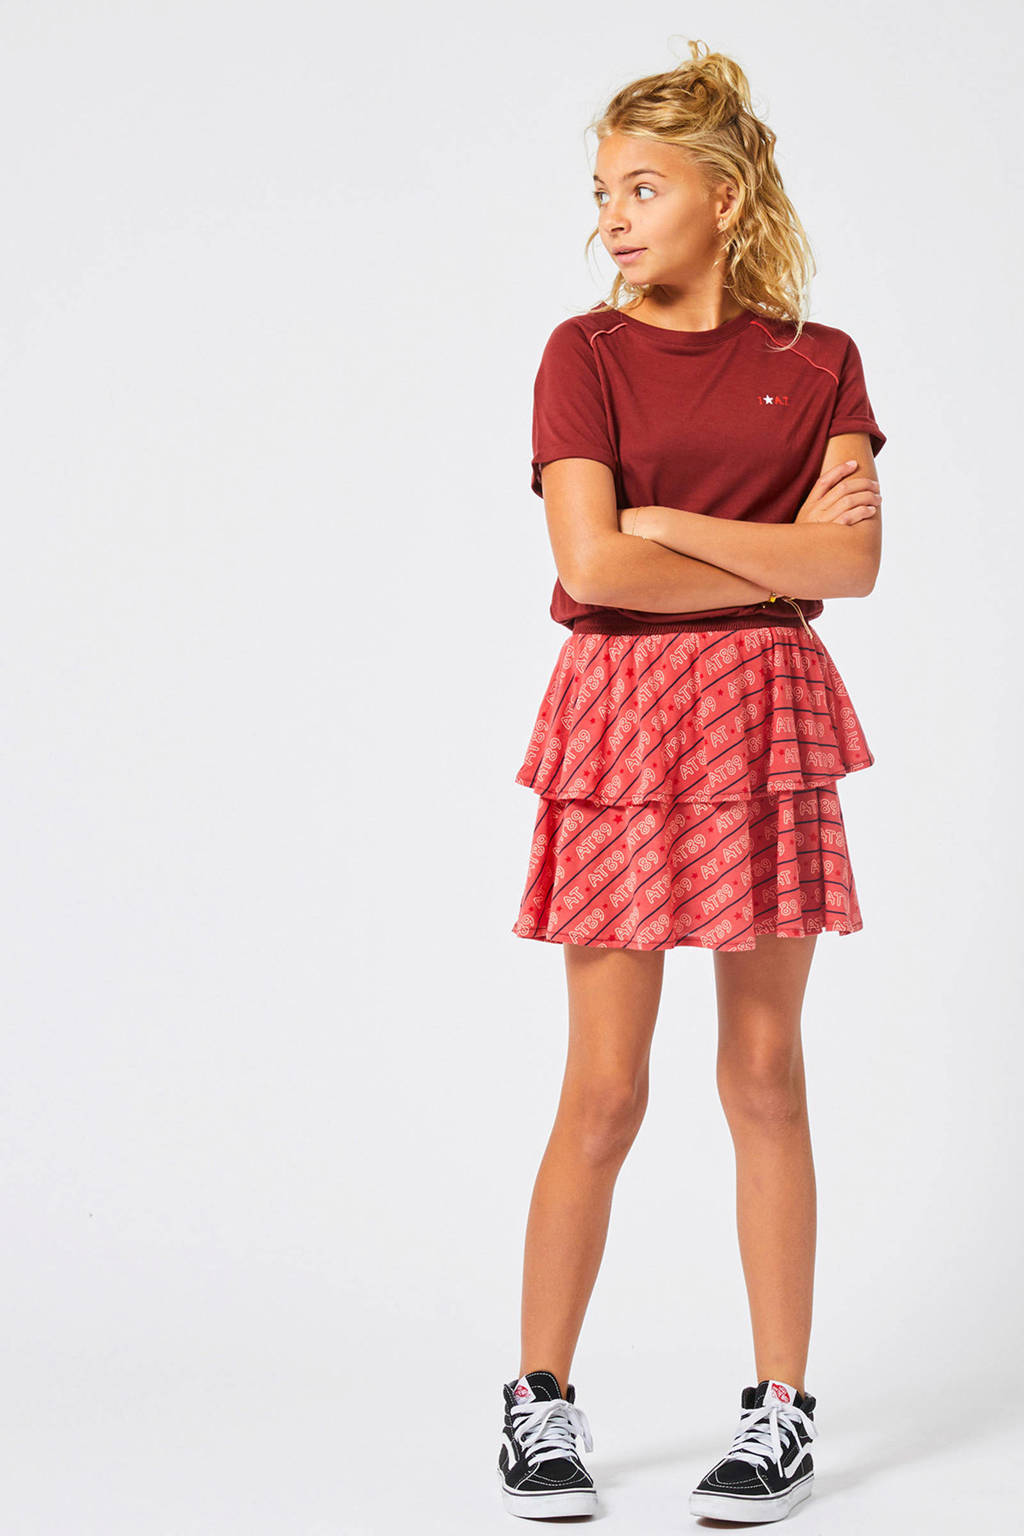 America Today Junior jurk Demi met logo rood, Rood